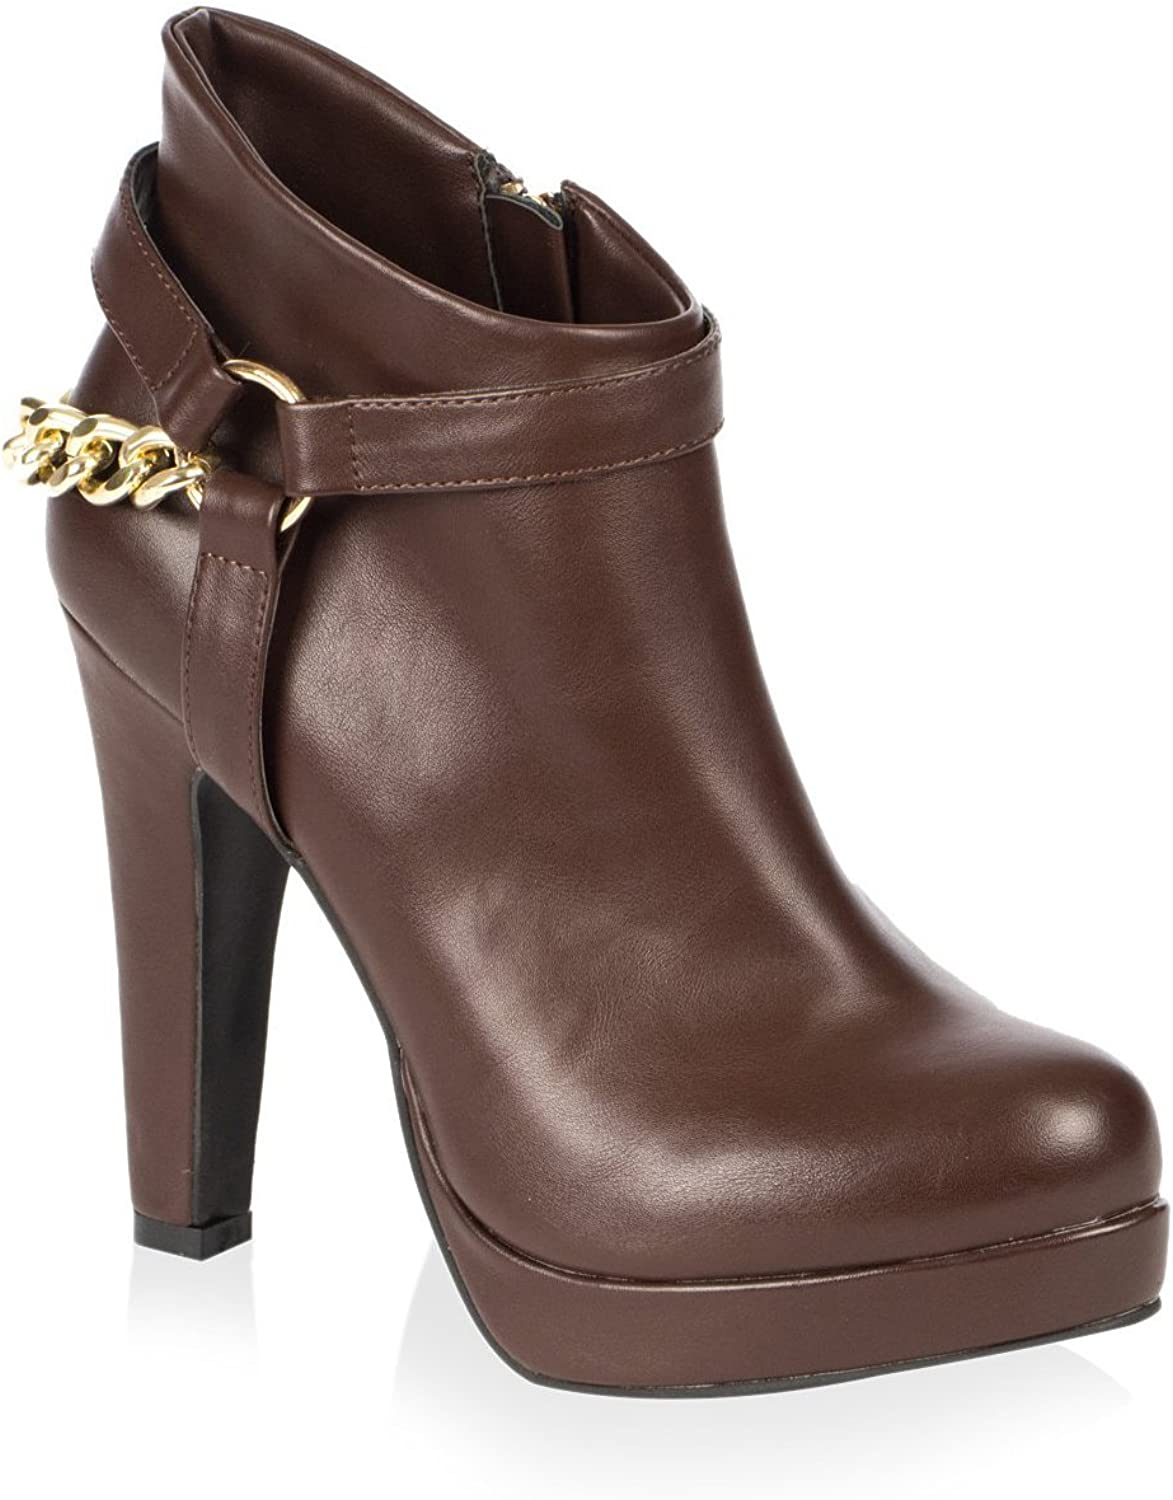 Gc shoes Women's Roxy Ankle Boot